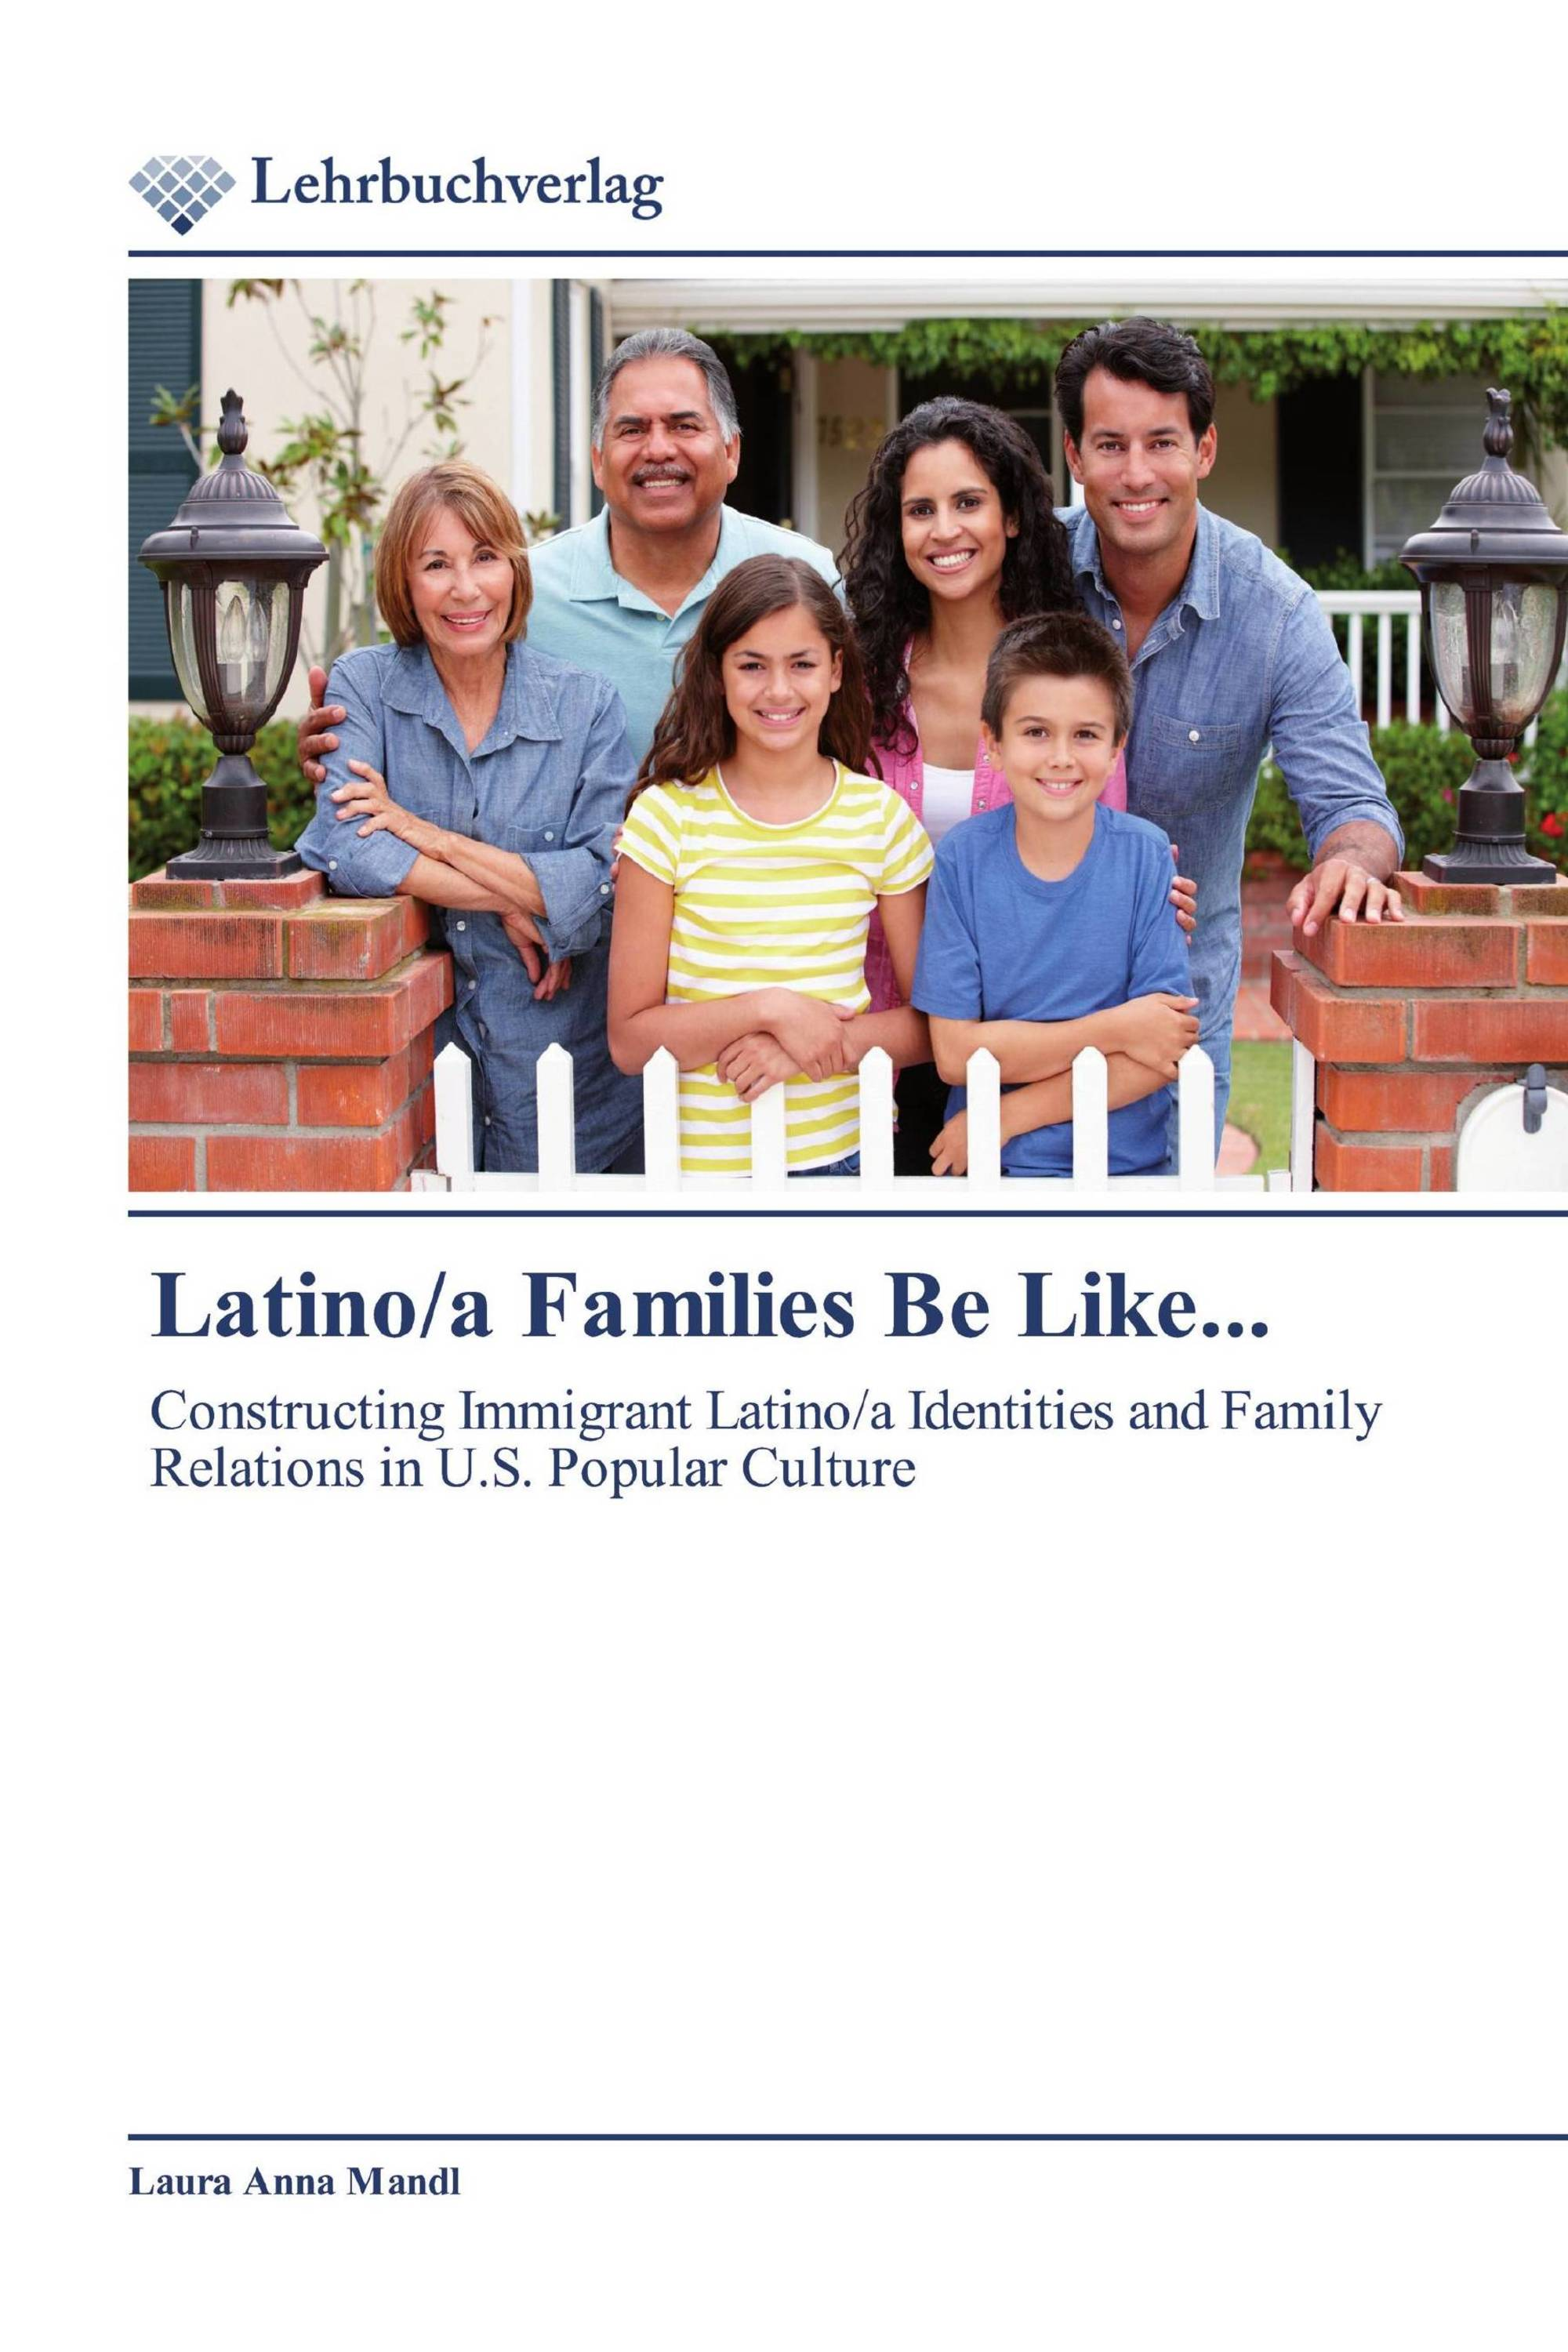 Latino/a Families Be Like...